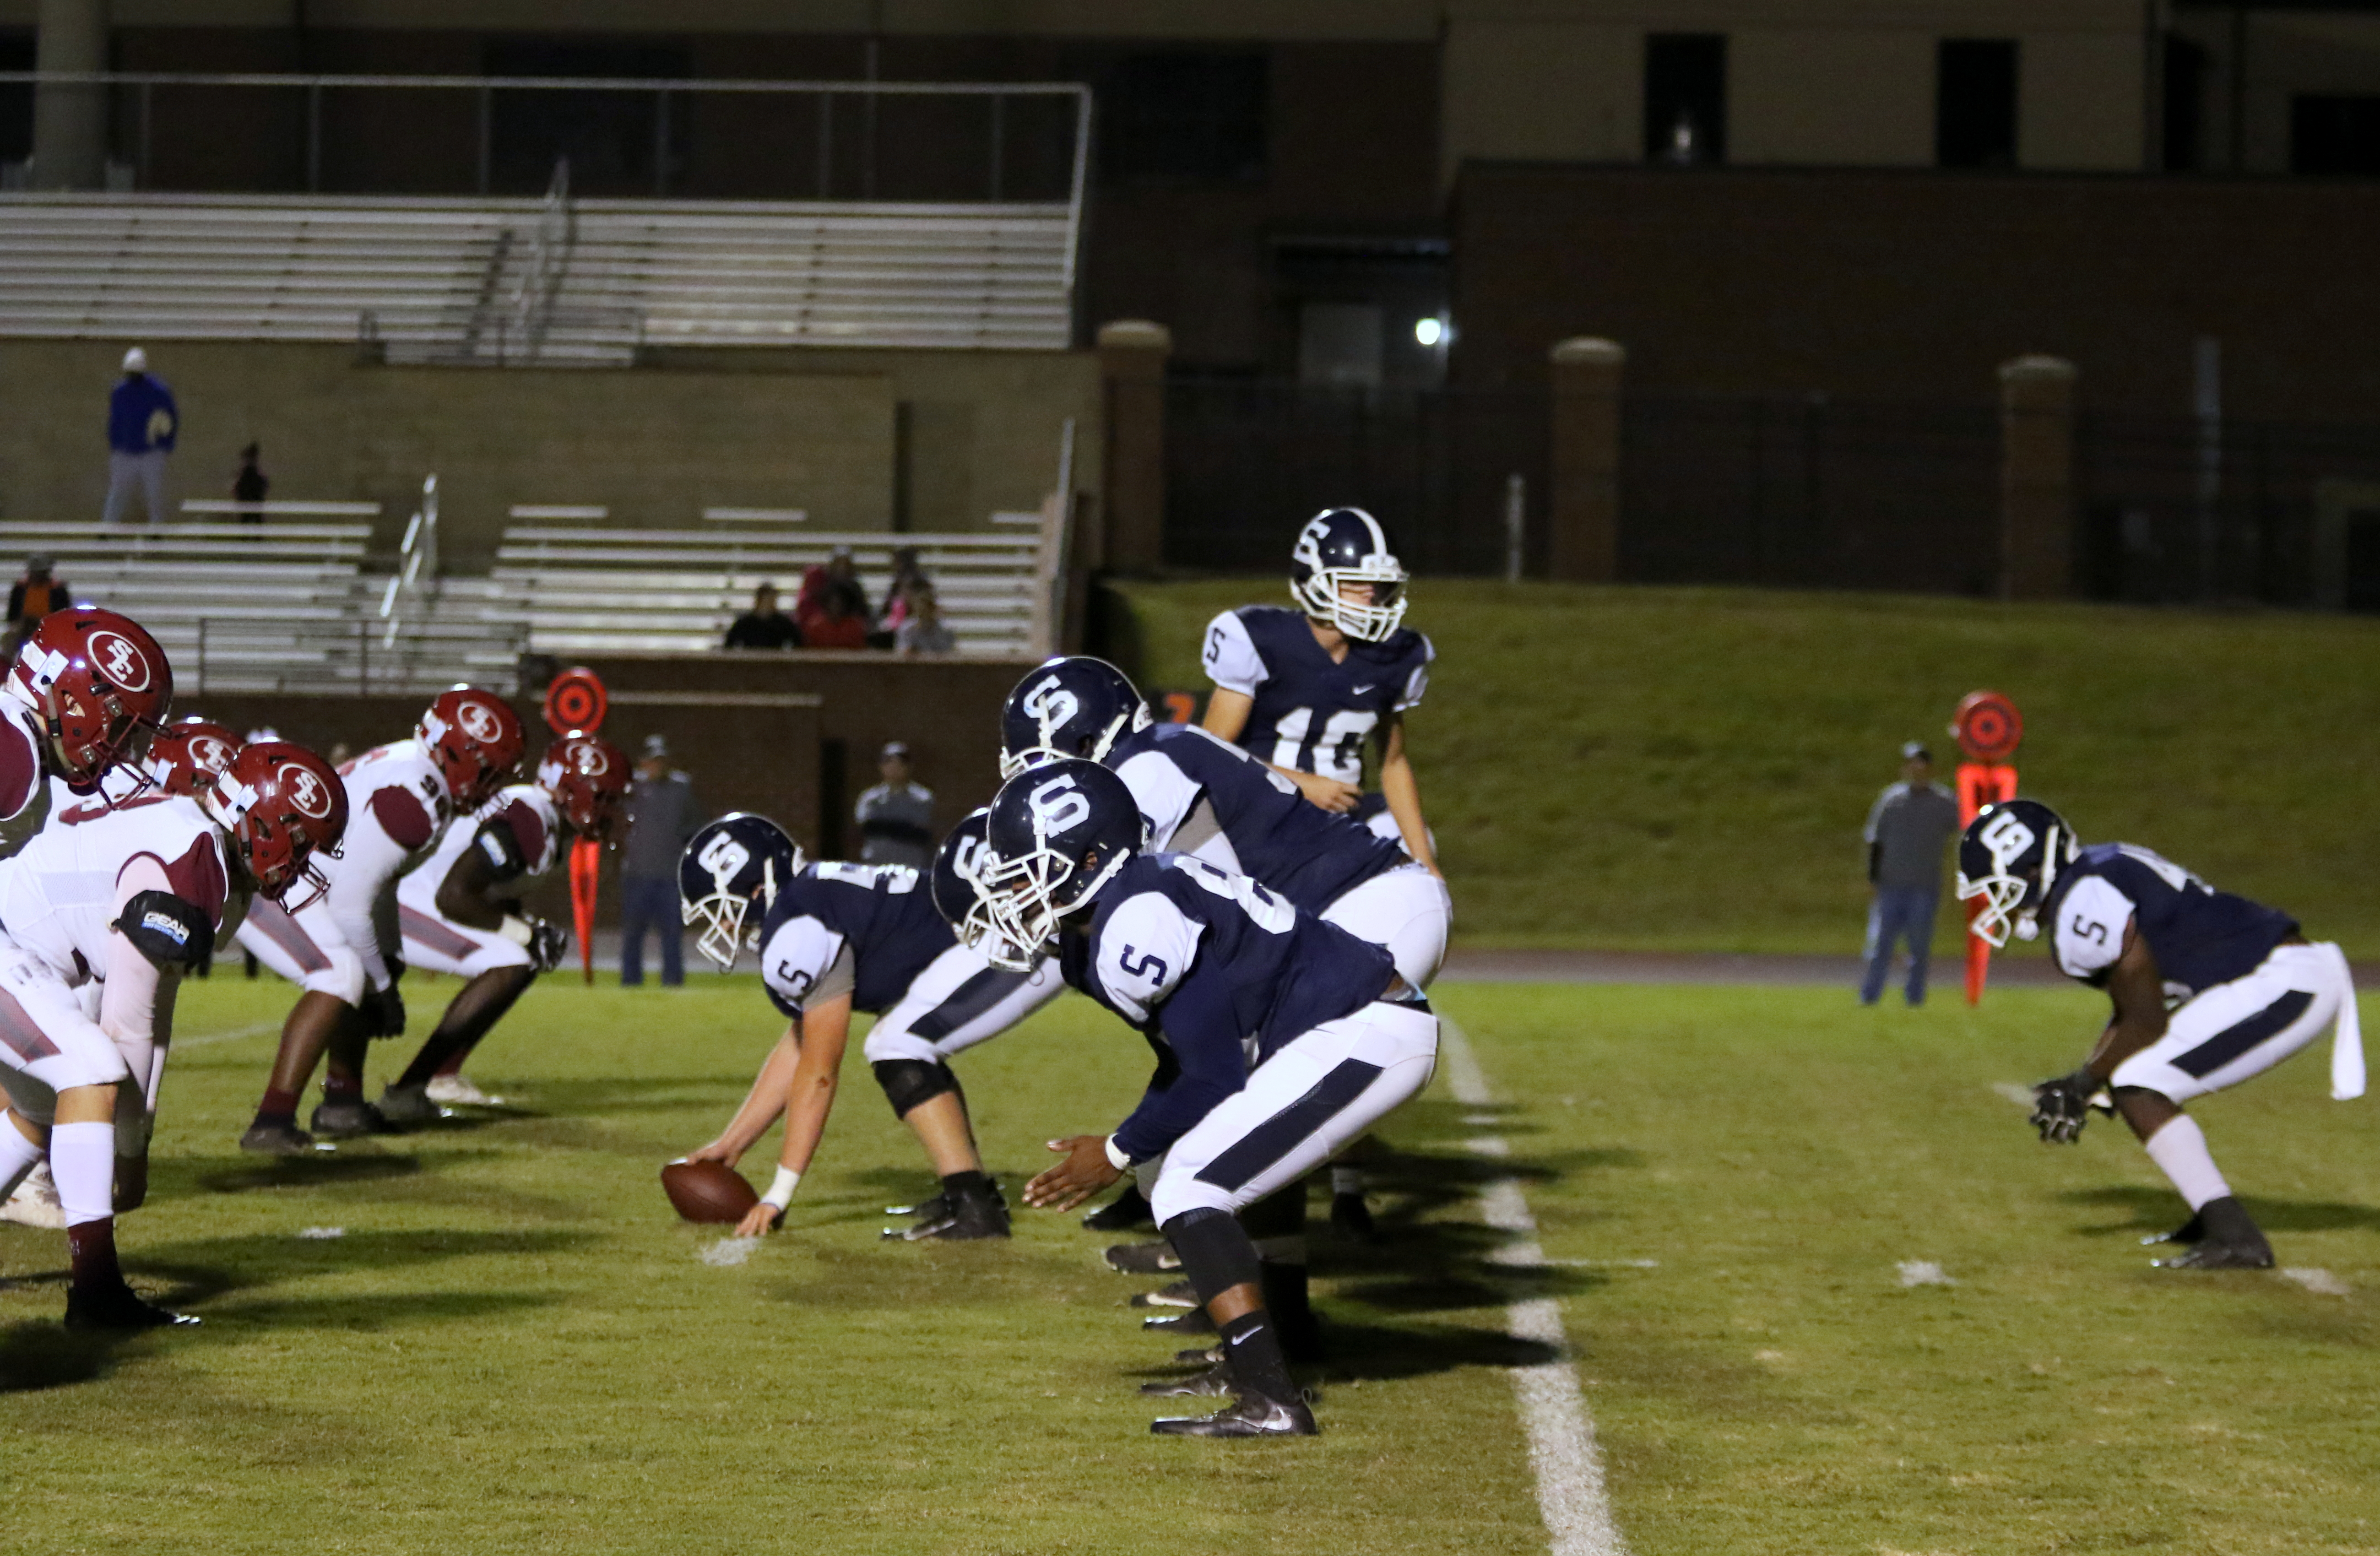 Football State Playoffs begin for the Devils